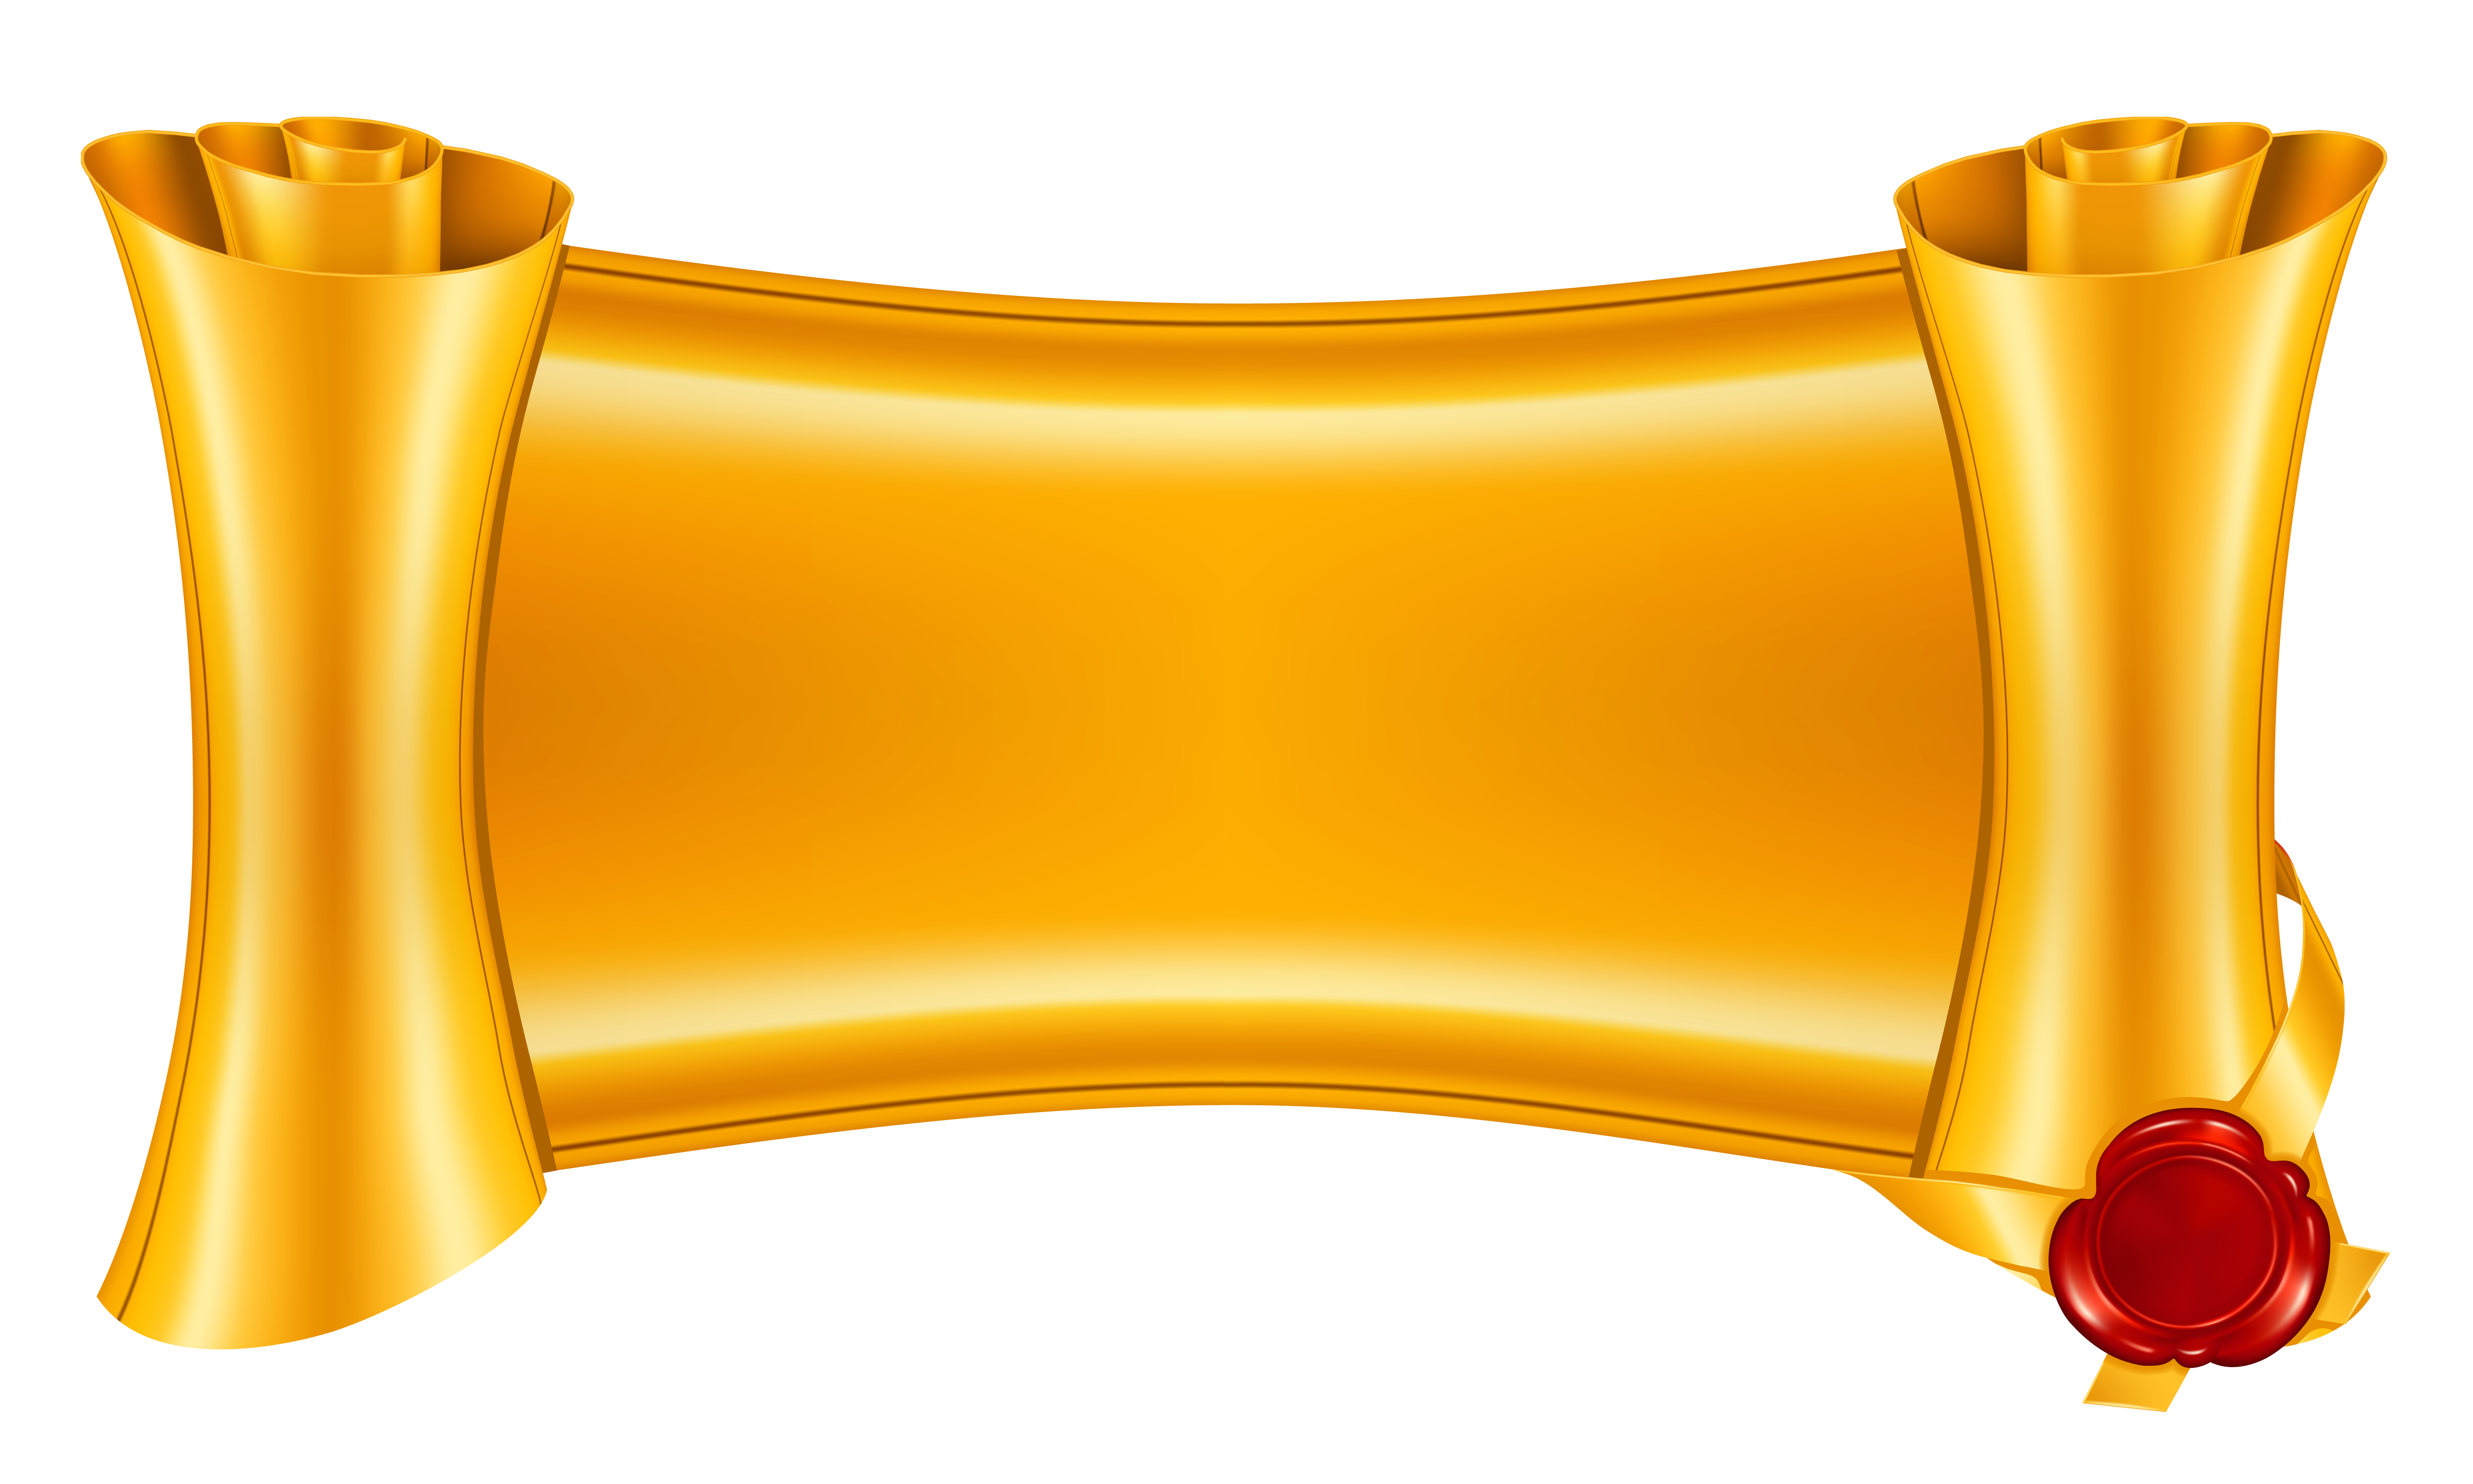 Gold Scrolls Png & Free Gold Scrolls.png Transparent Images.